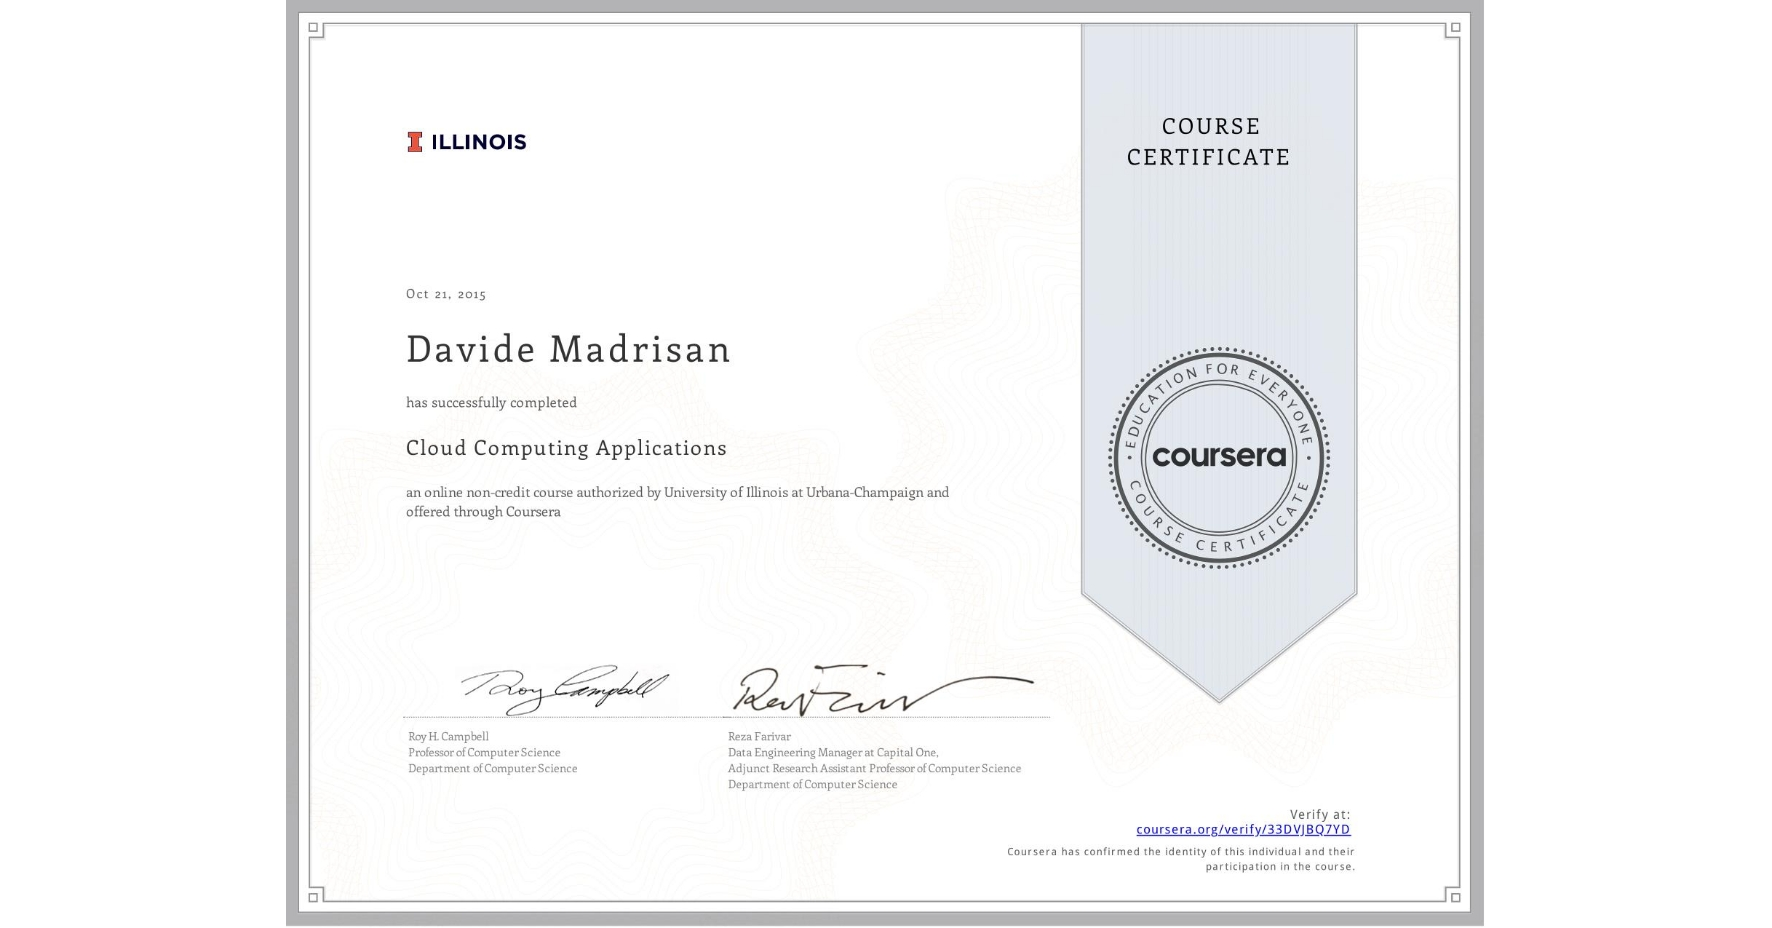 View certificate for Davide Madrisan, Cloud Computing Applications, an online non-credit course authorized by University of Illinois at Urbana-Champaign and offered through Coursera